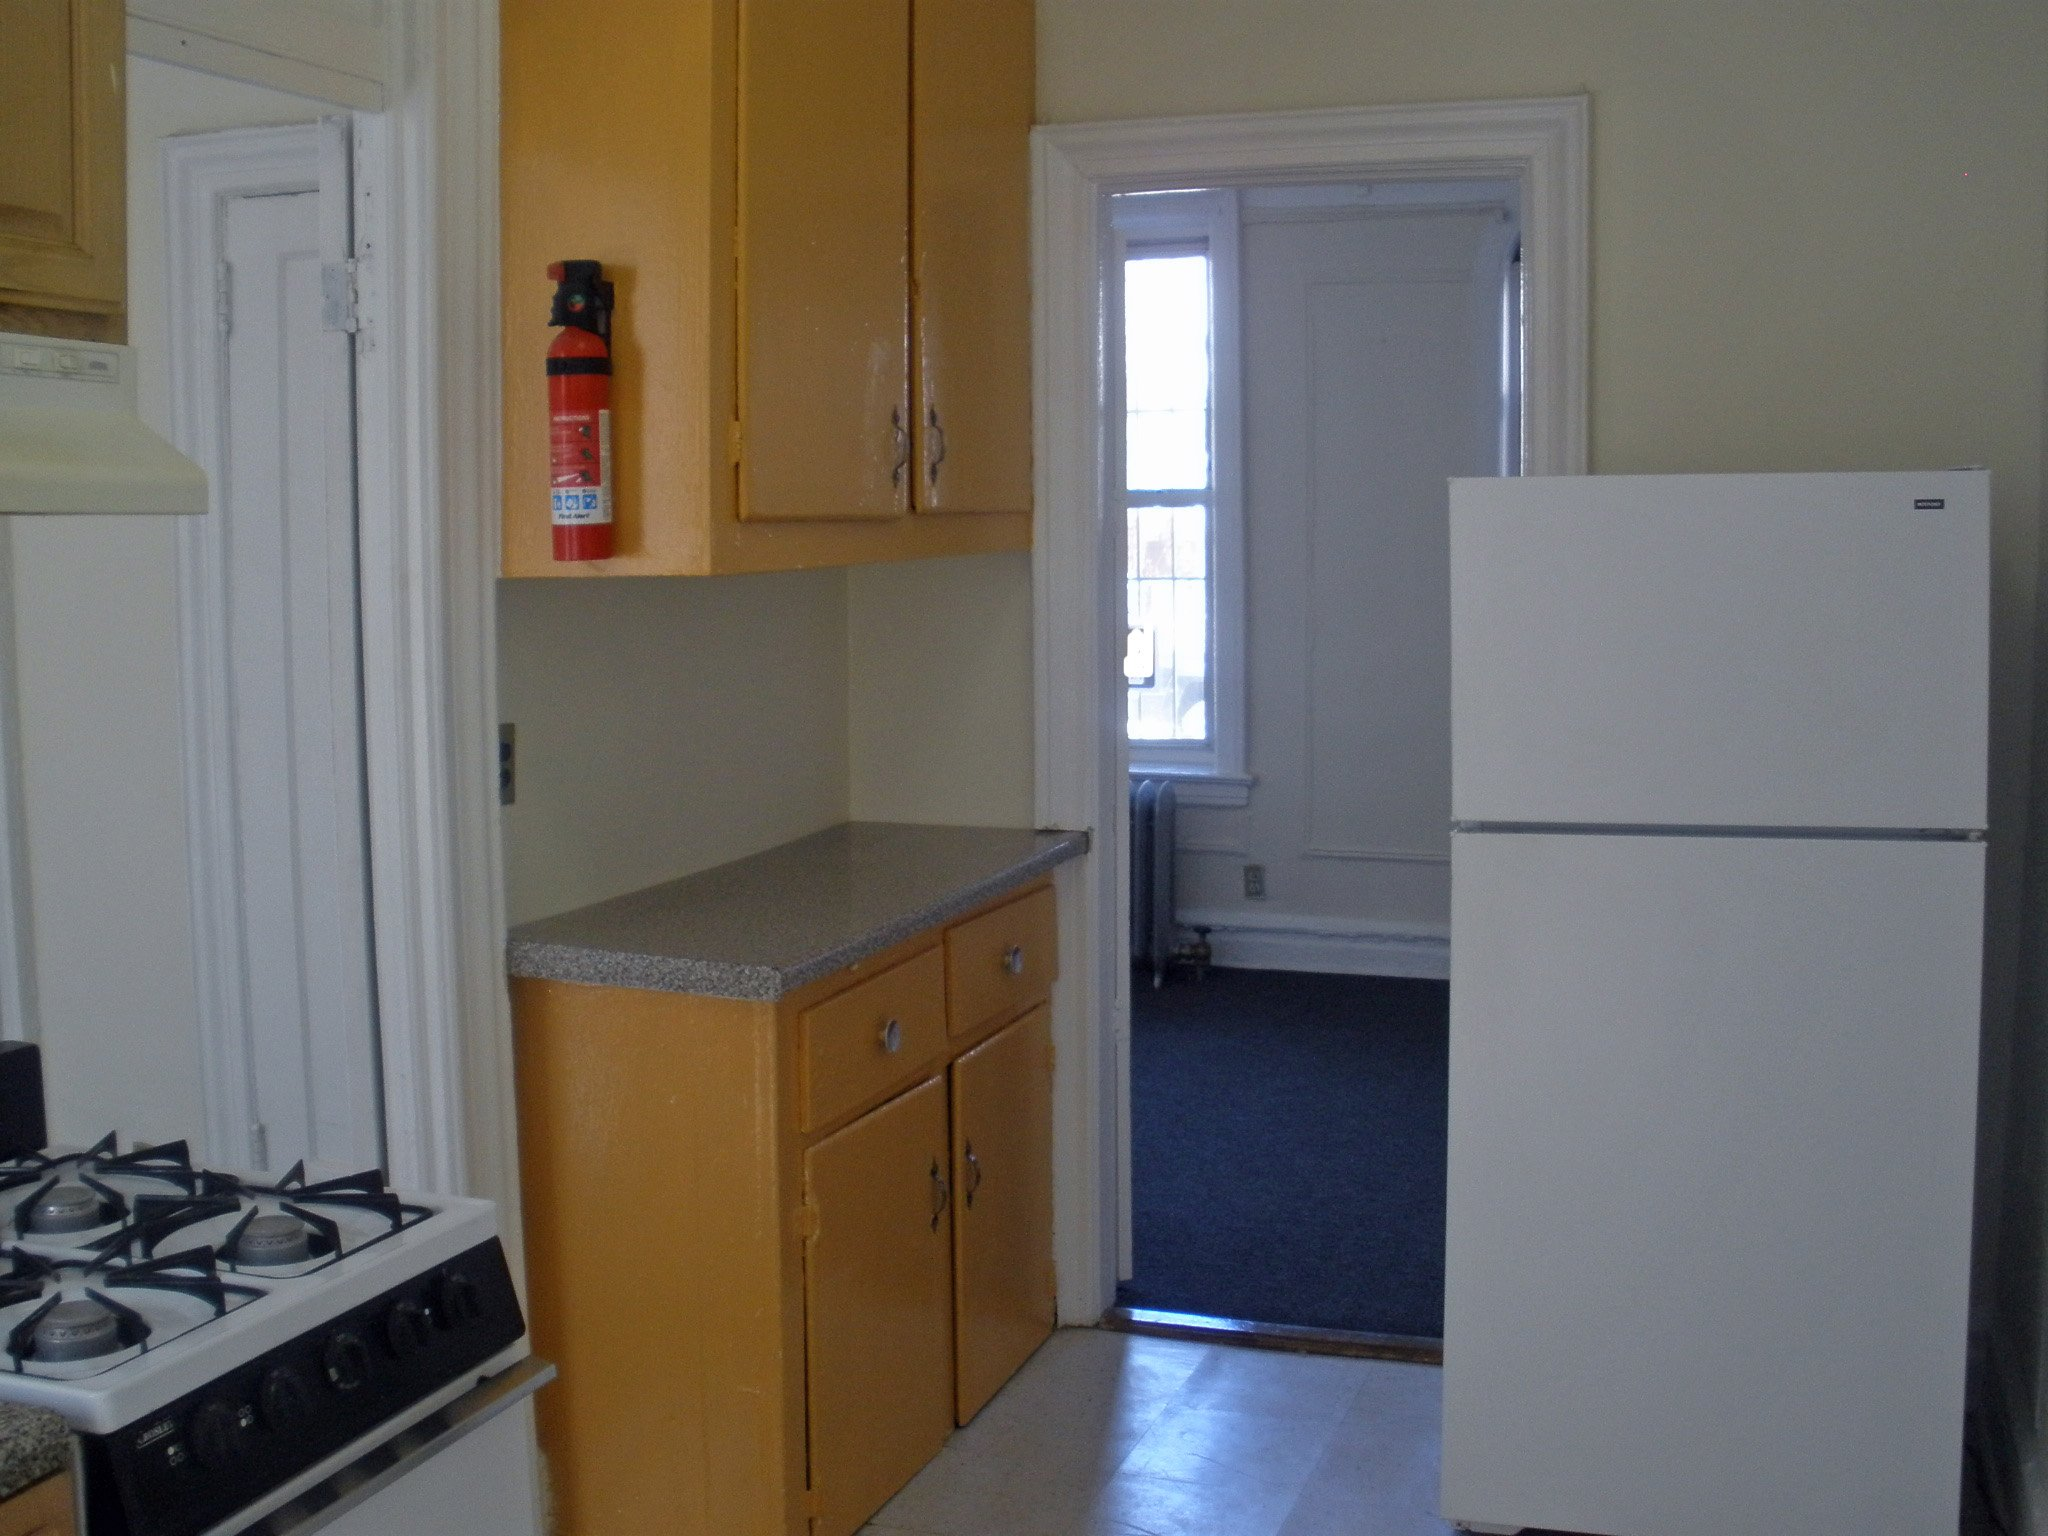 east flatbush 1 bedroom apartment for rent brooklyn crg3089 rh corleyre com 1 bedroom apartments for rent in brooklyn under 1400 1 bedroom apartments for rent in brooklyn ny